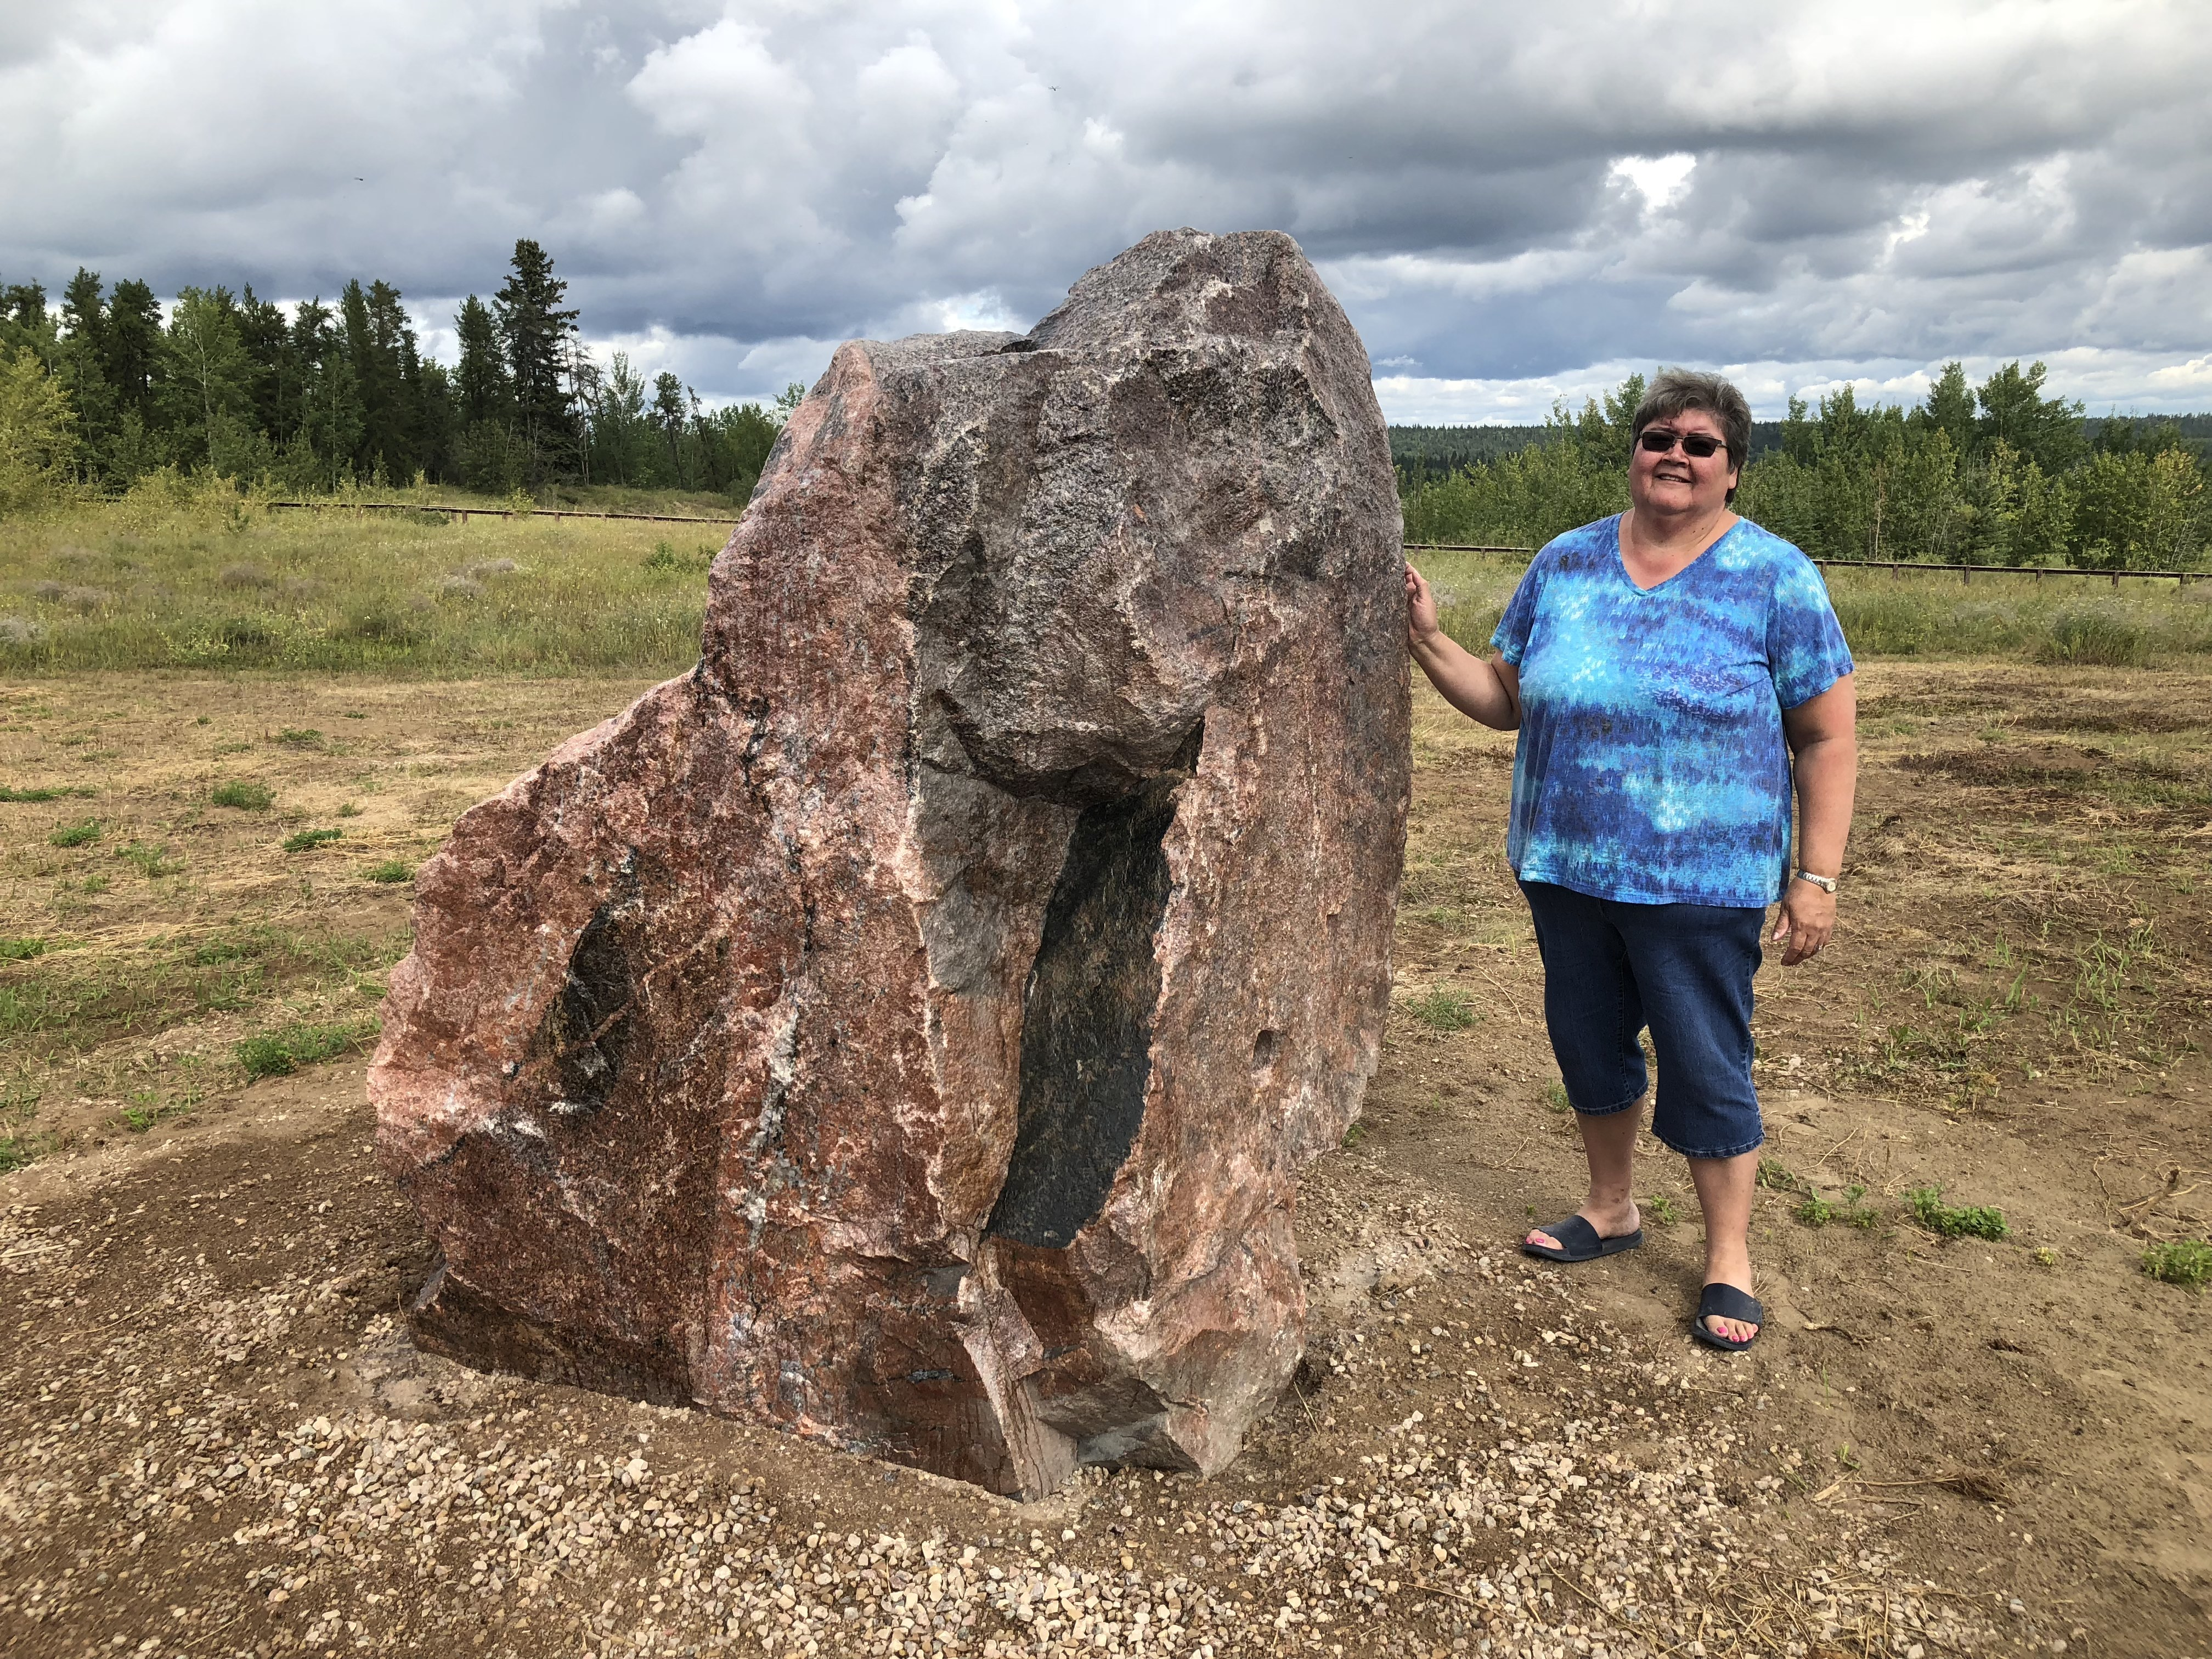 Jeanie Marie-Jewell thinks she would have more of a connection to her culture if the landslide hadn't happened. (Rachel Zelniker/CBC)